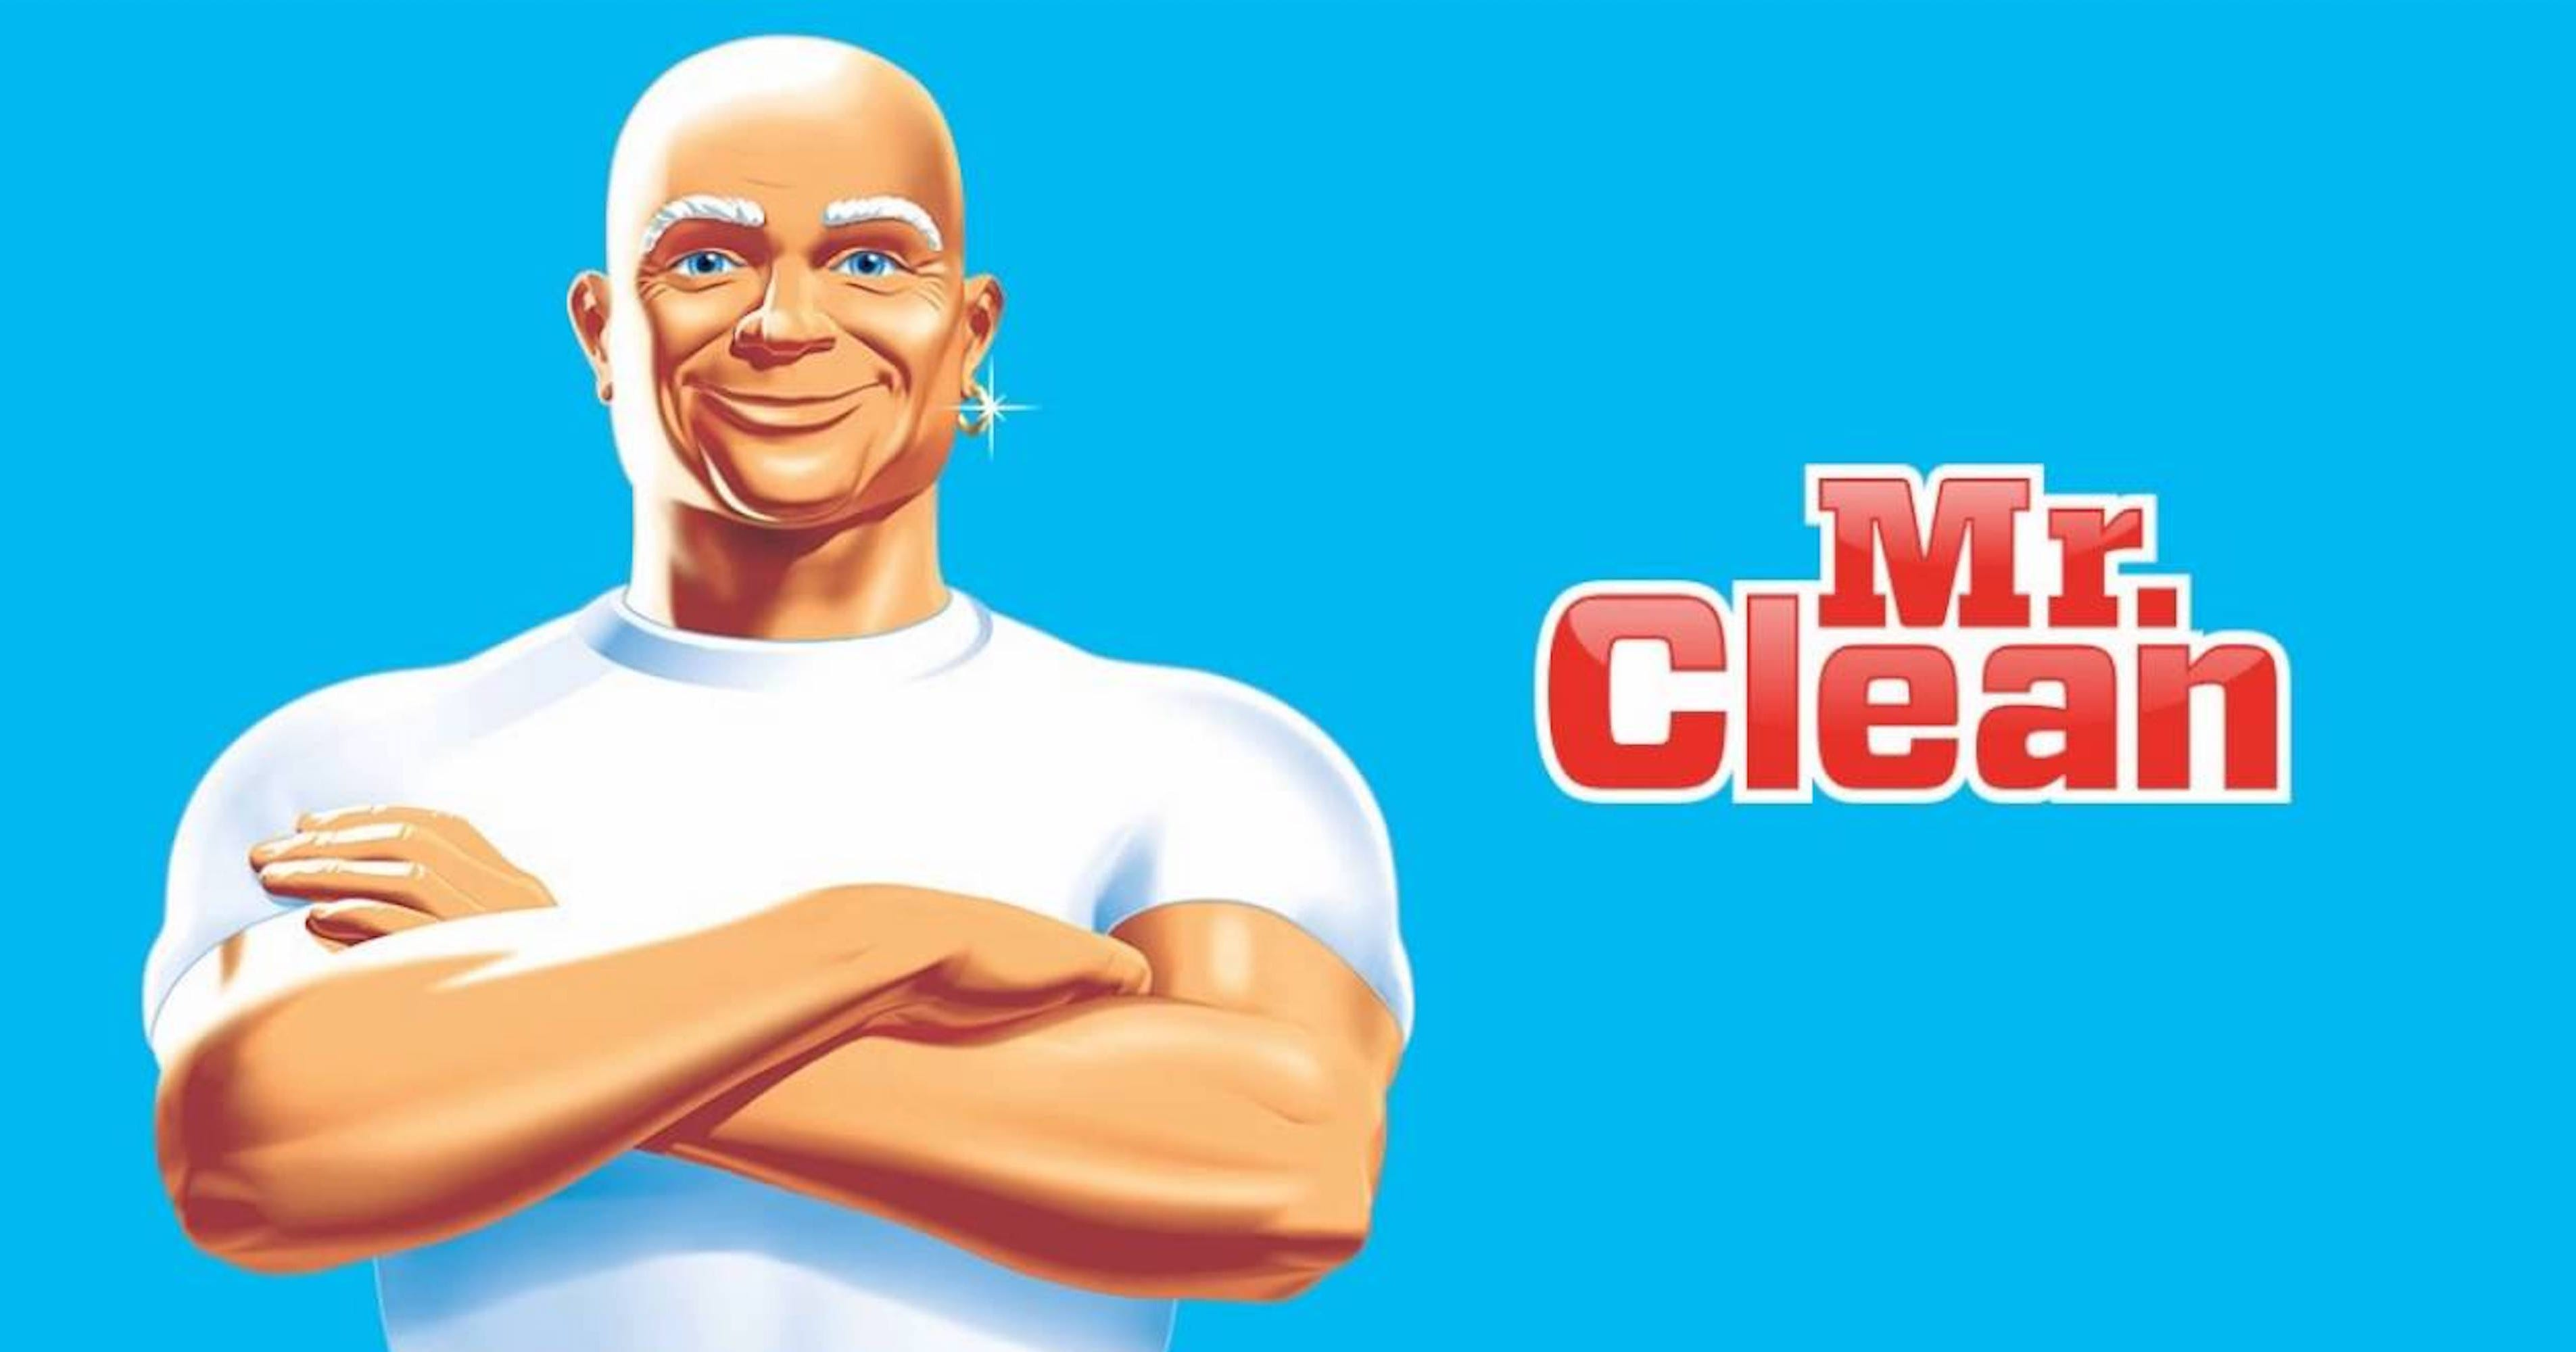 Mr Clean Cleaning Man Cartoon   Video Bokep Ngentot - photo #30